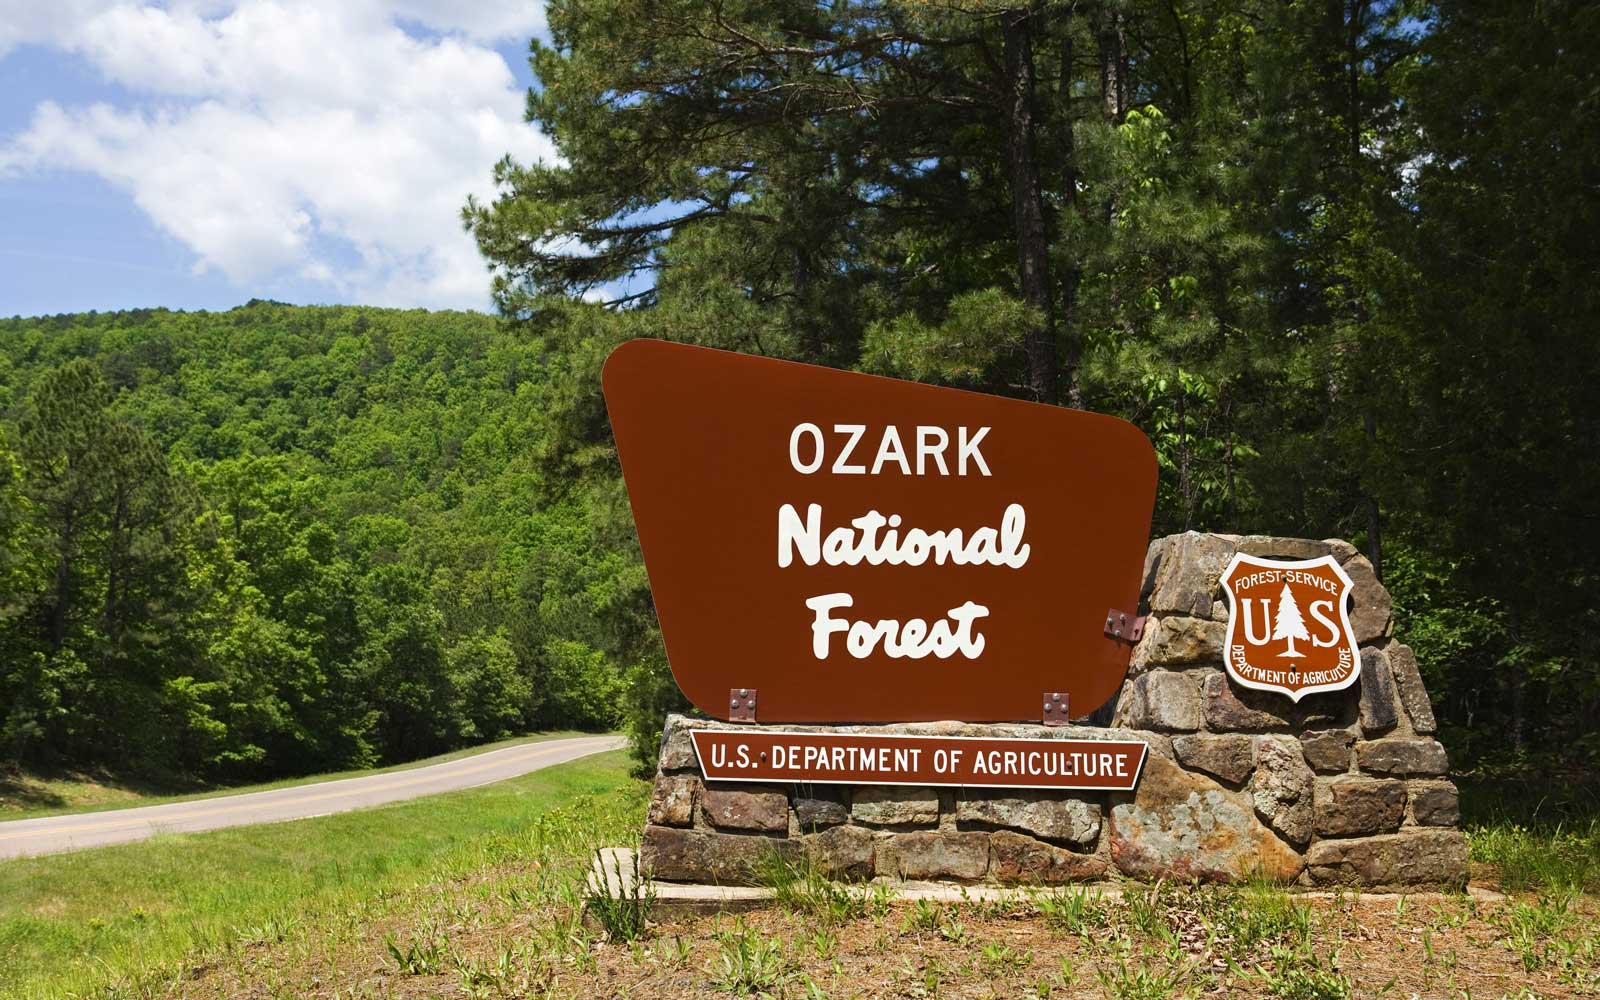 Visit the Ozark National Forest for the Next Eclipse